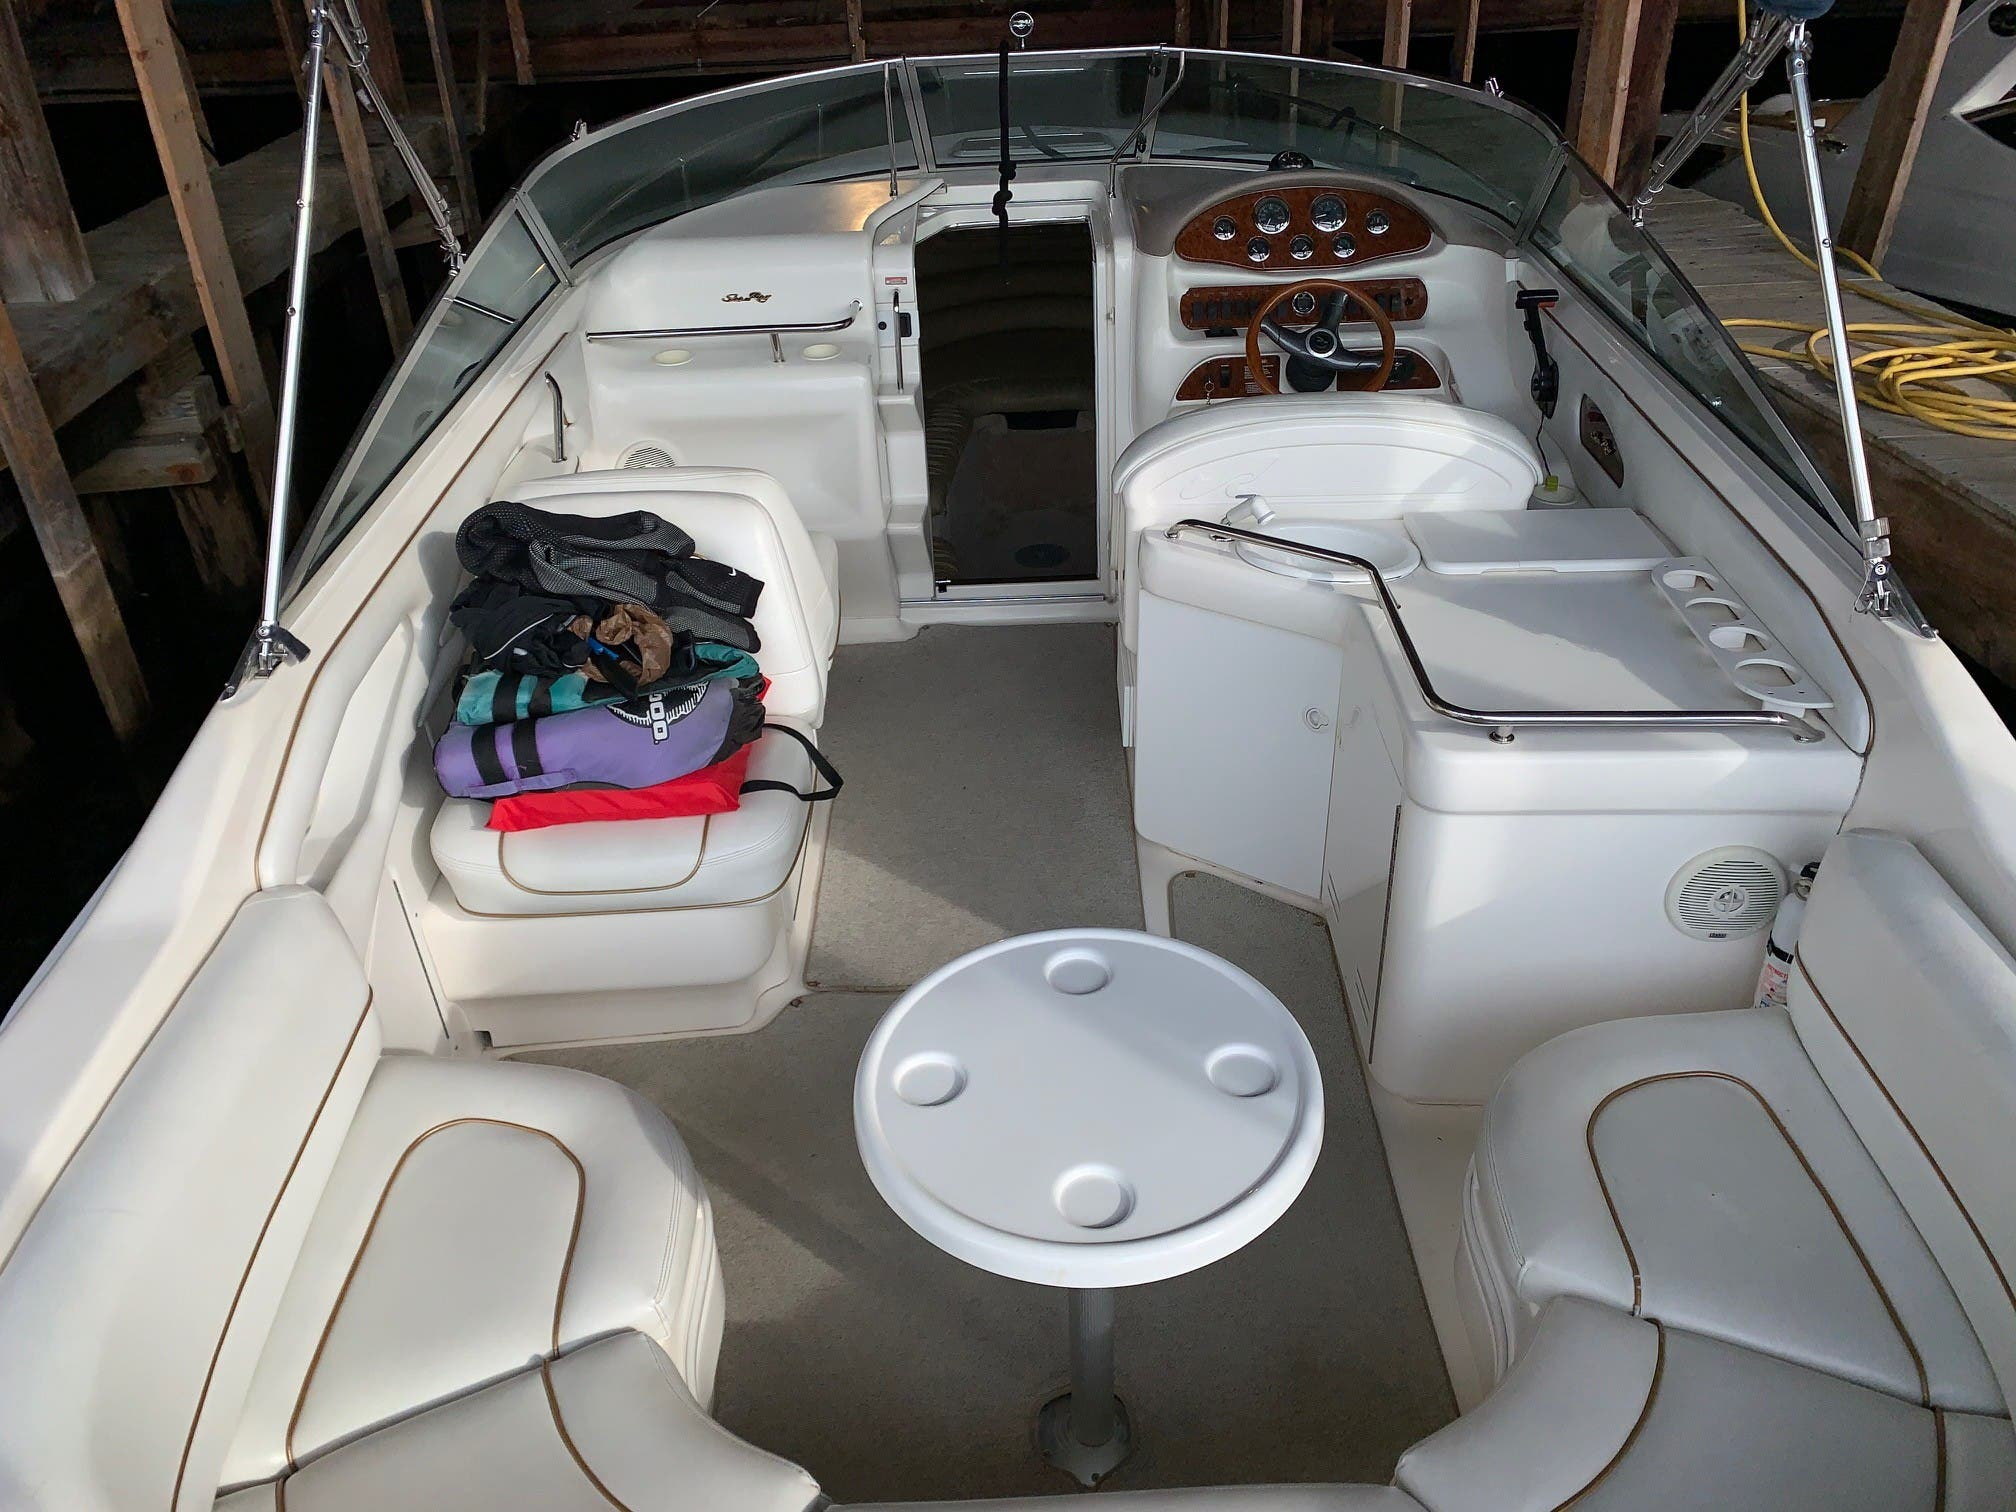 1998 Sea Ray boat for sale, model of the boat is 280 Sunsport & Image # 4 of 11